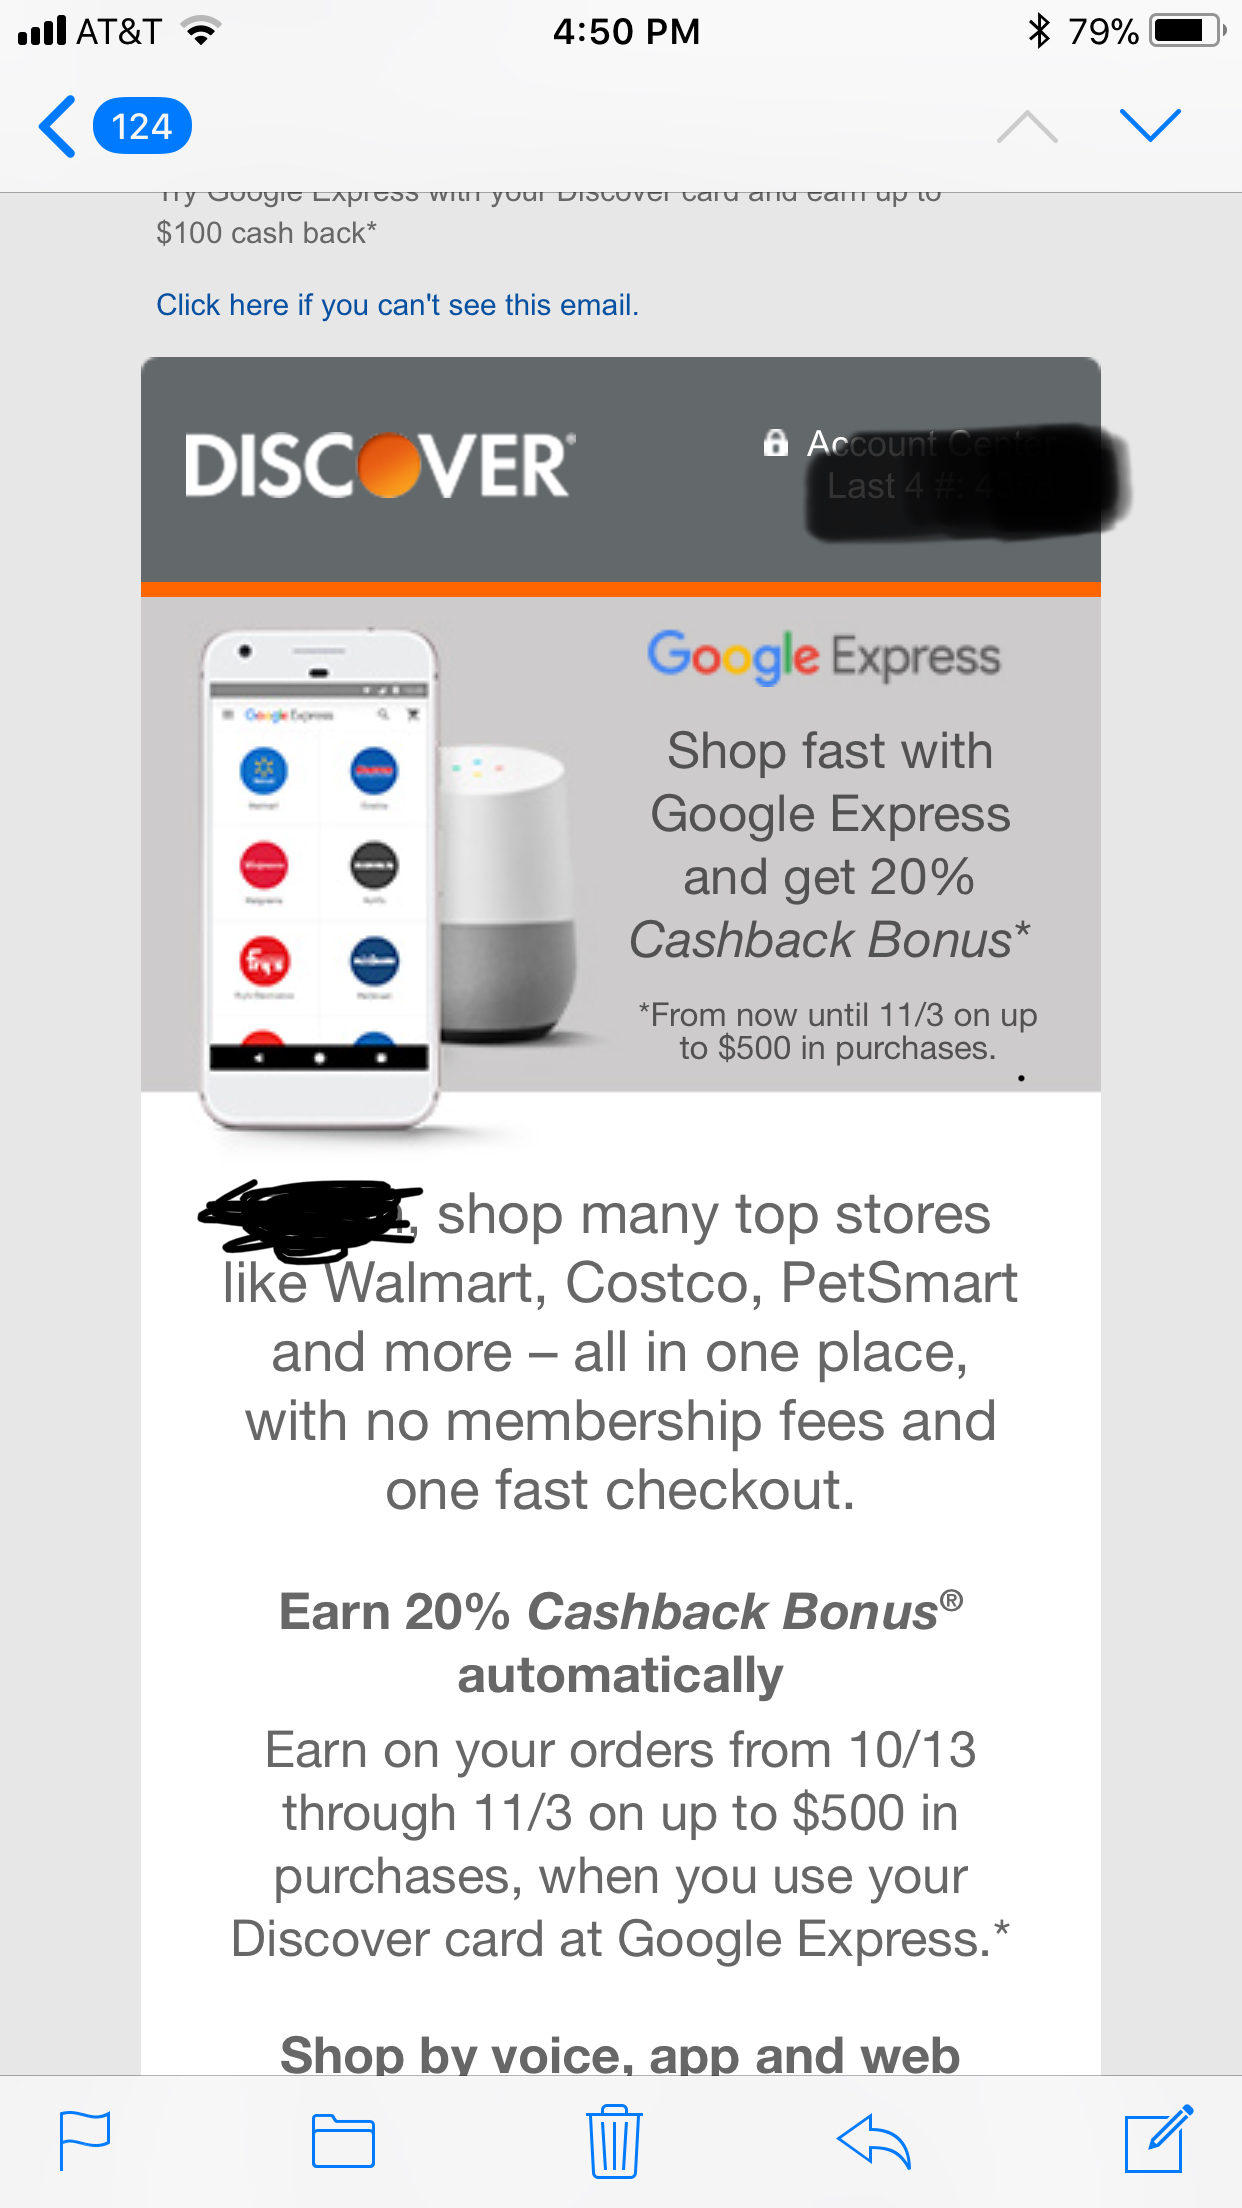 via https://www.reddit.com/r/churning/comments/7681ud/discover_20_cashback_with_google_express_maybe/